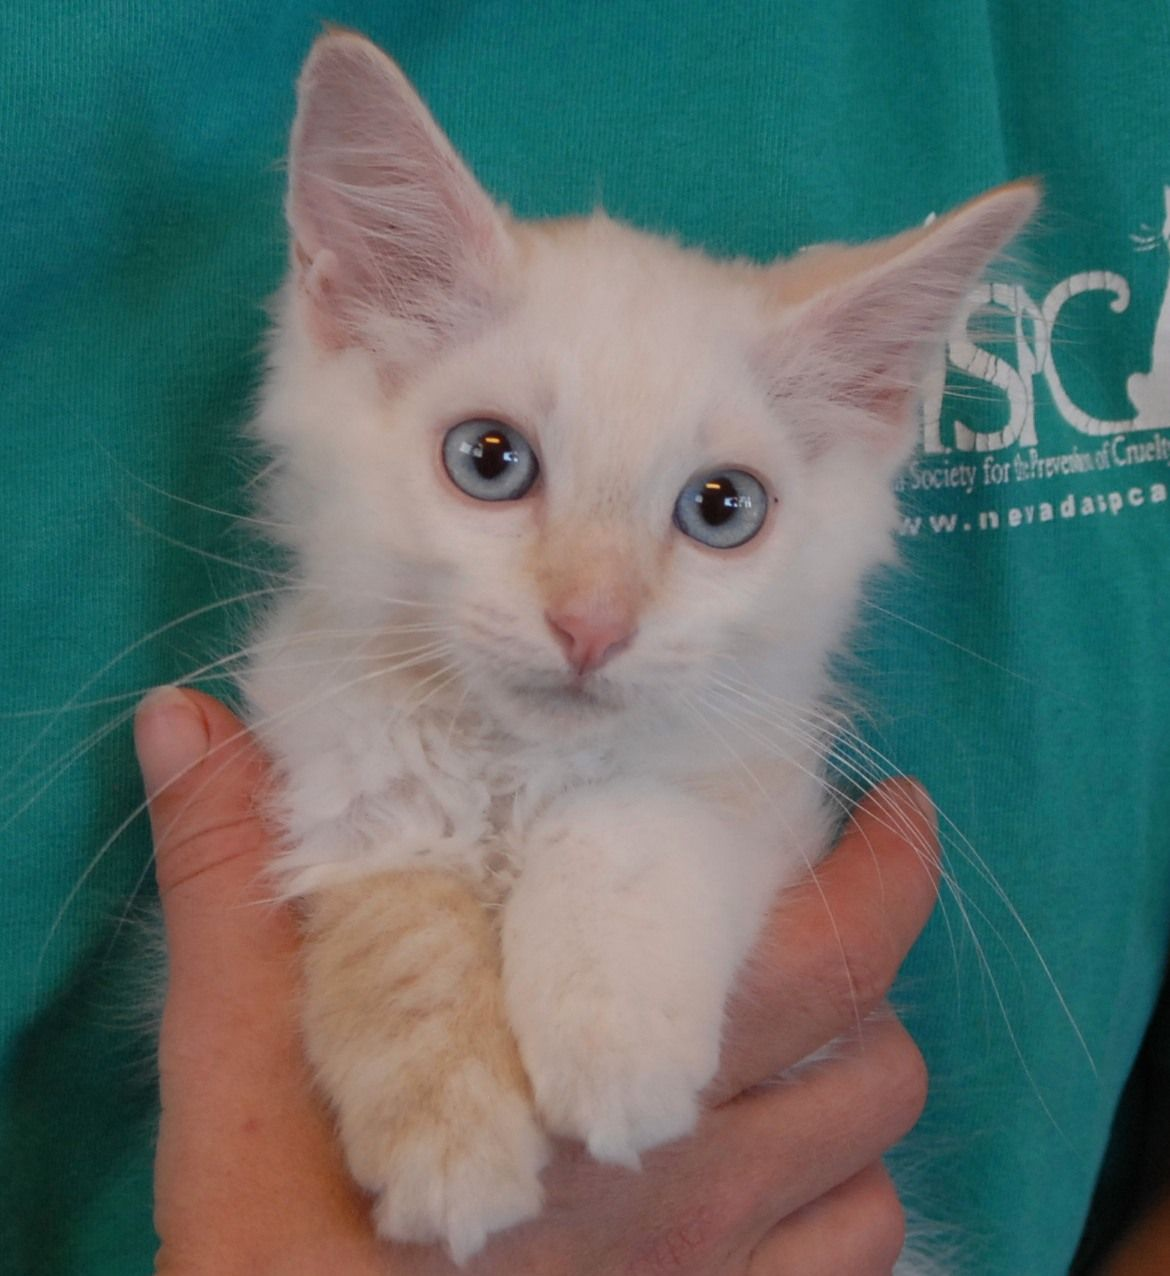 Brennan Is A Super Cute Flame Point Siamese Mix Kitten Now Ready For Adoption At Nevada Spca Www Nevadaspca Org Brennan Was 1 Of Kitty Animal Rescue Kitten